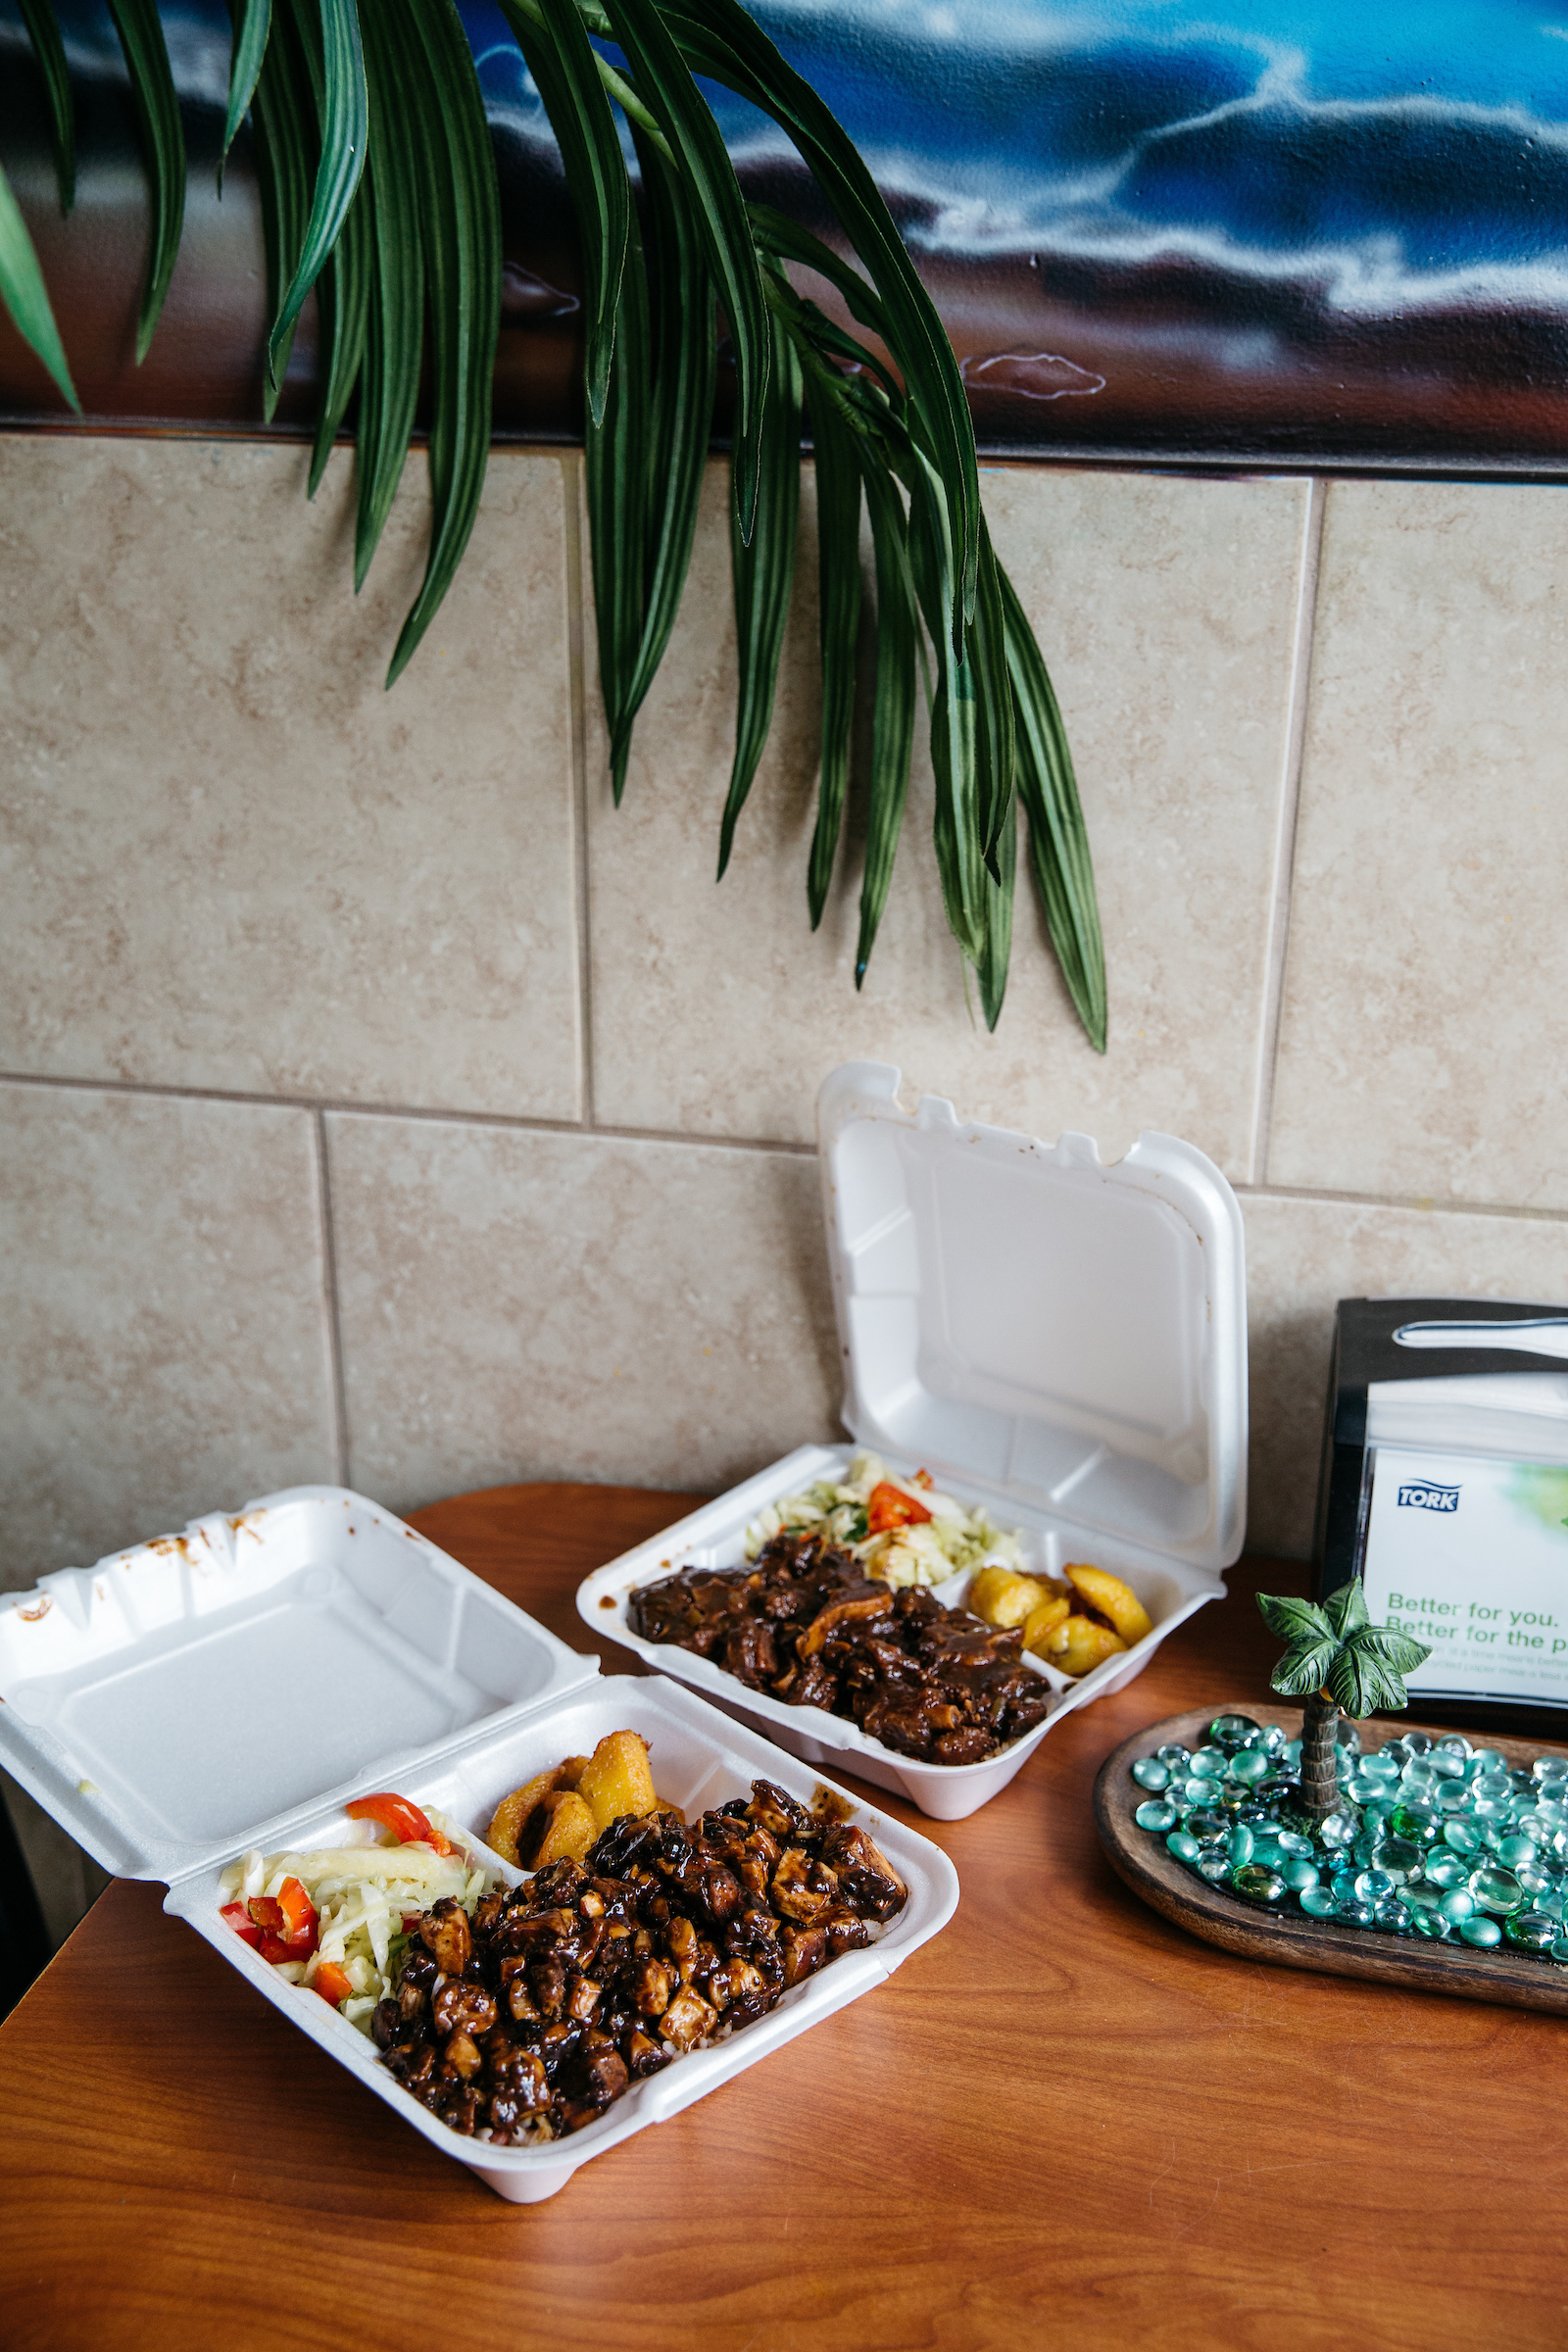 Carryout containers filled with food from the Jamaican Pot.